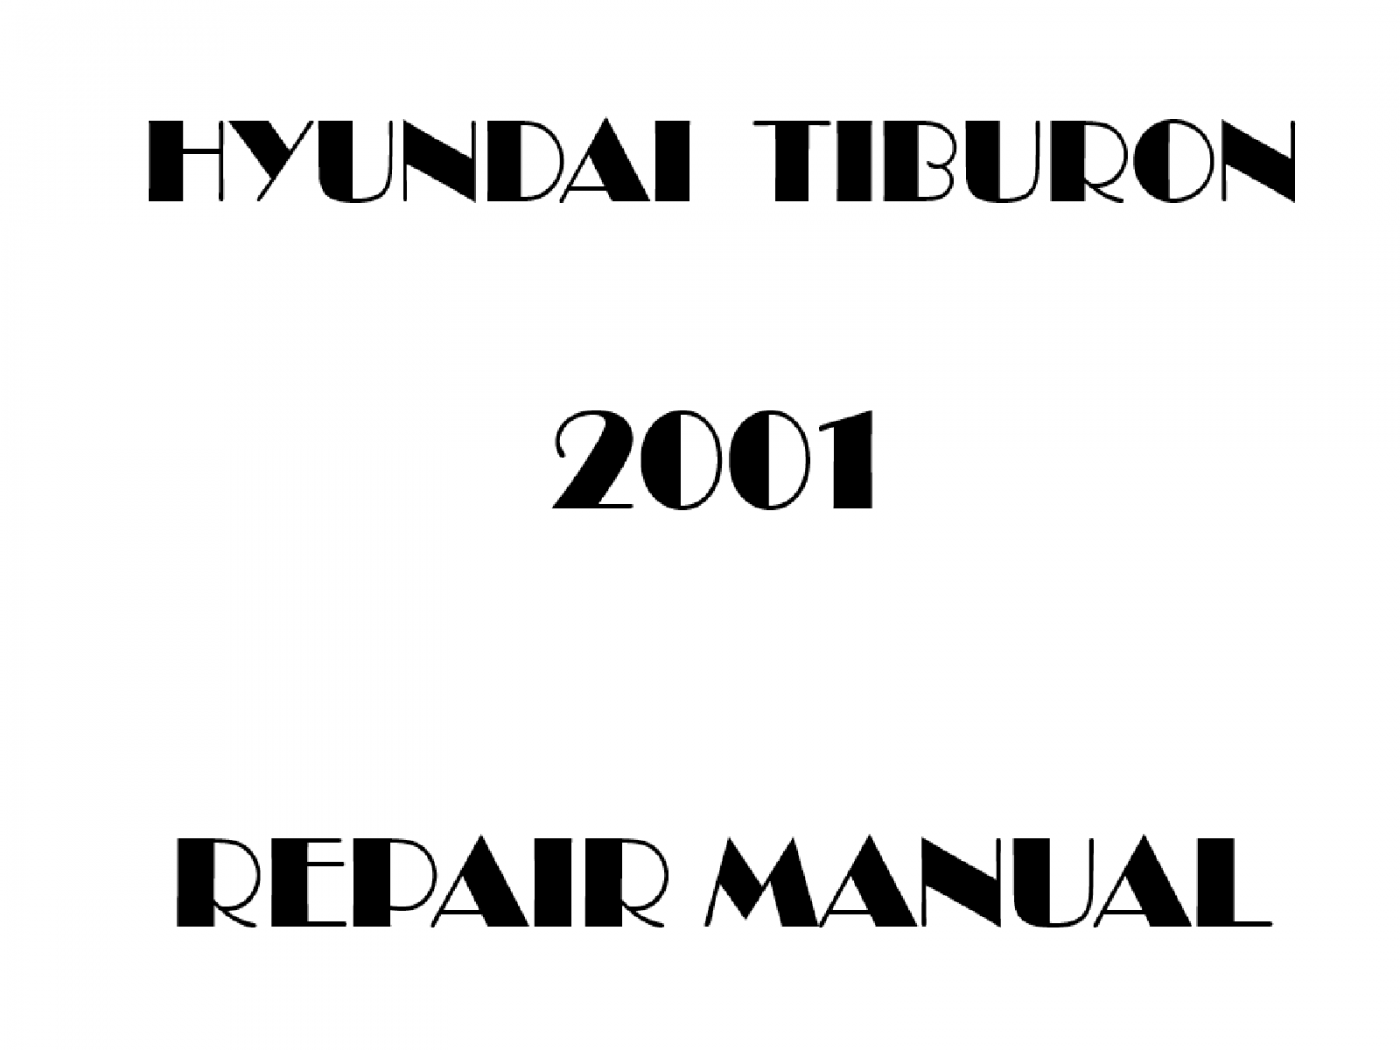 2001 Hyundai Tiburon repair manual